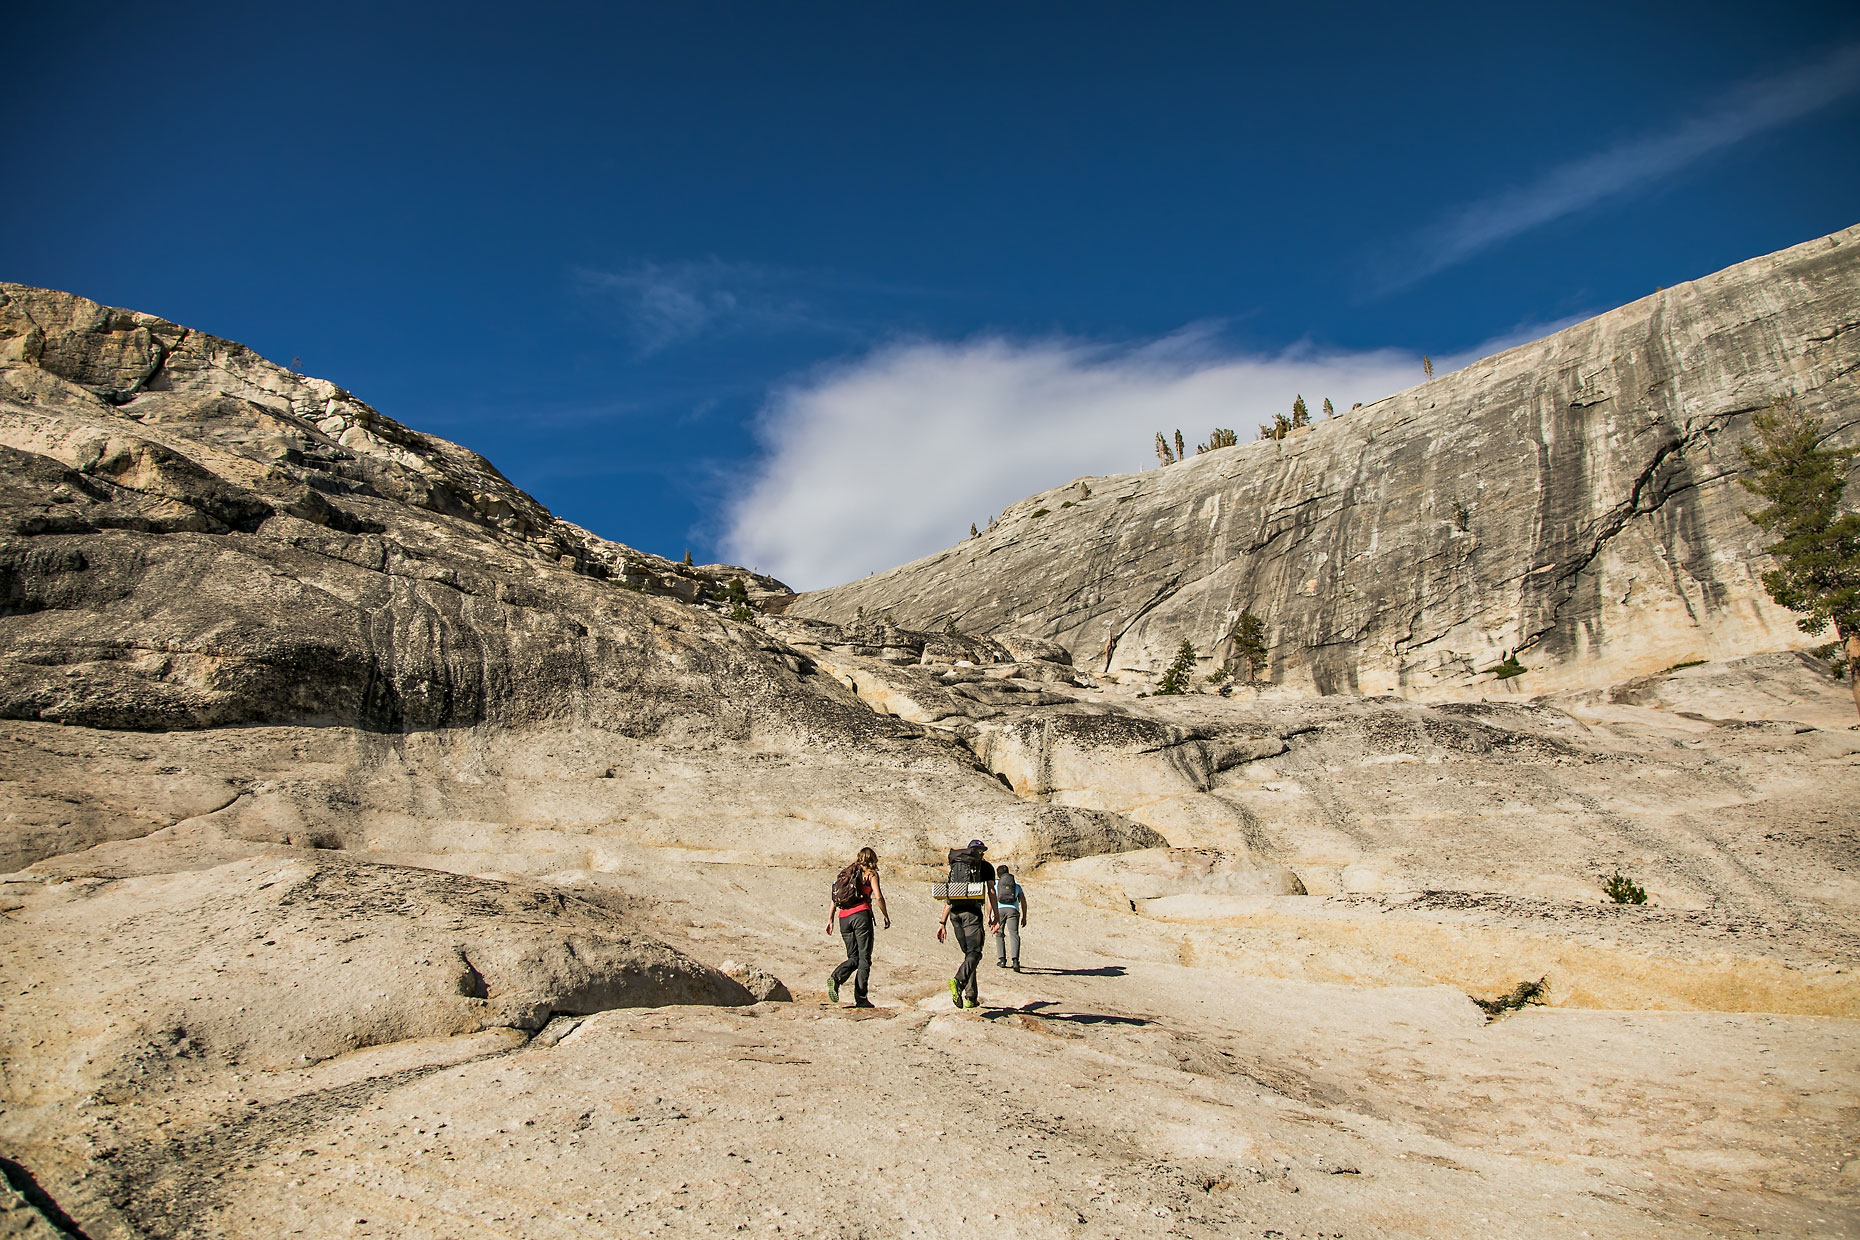 Tuolumne adventure session photography in Yosemite.